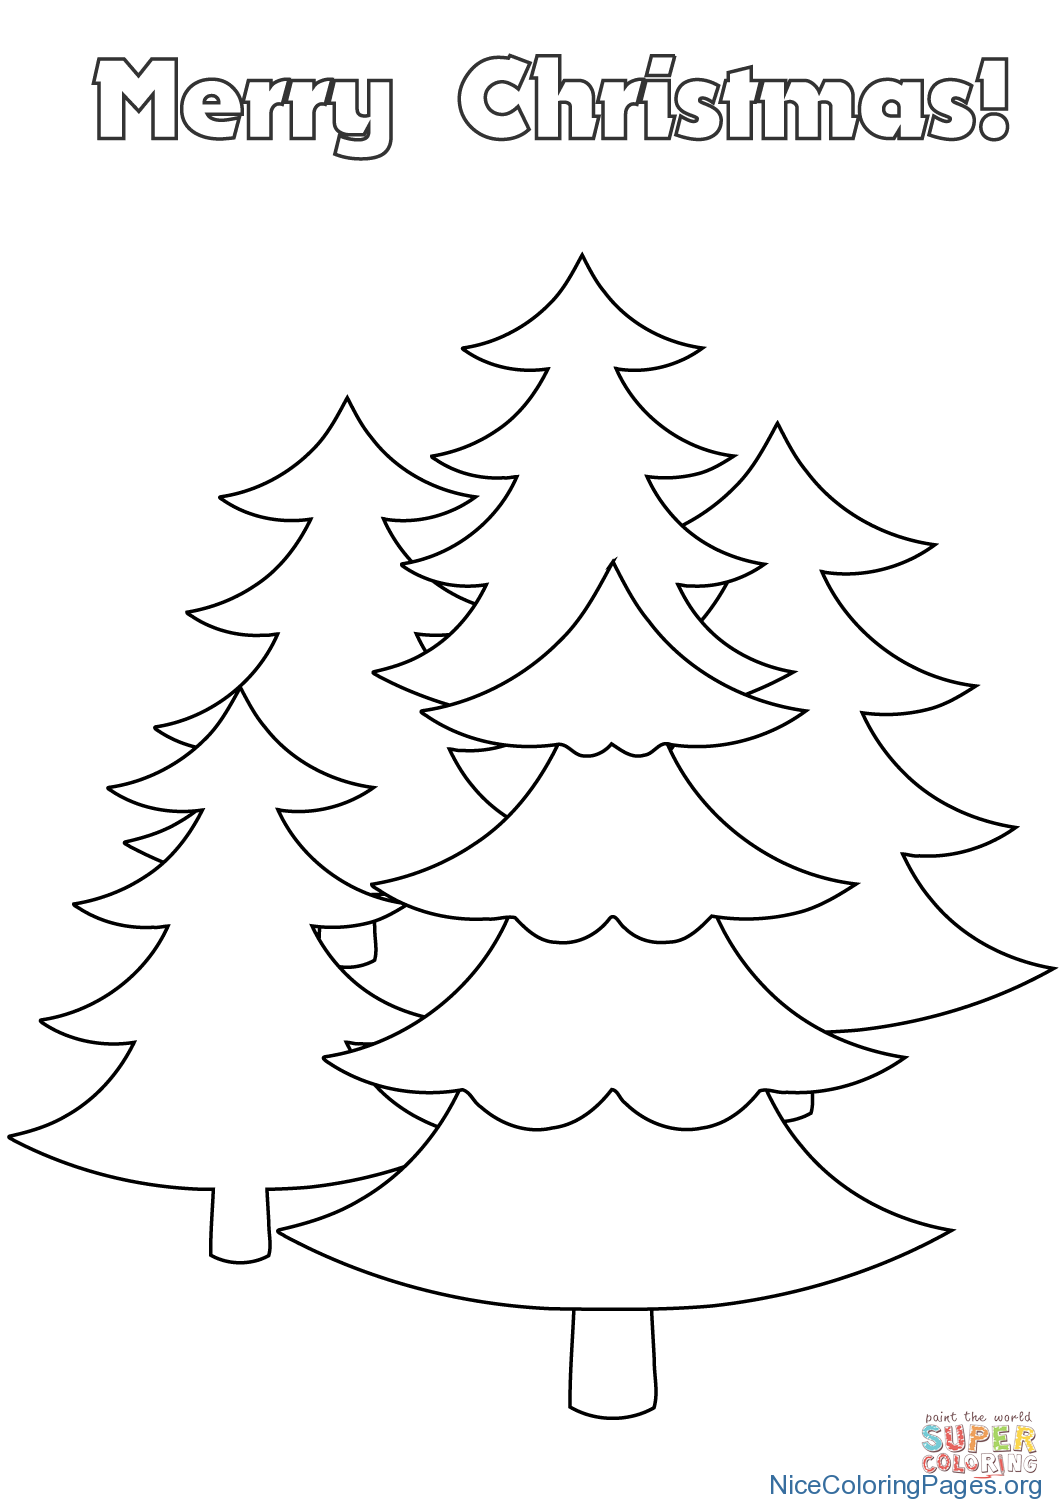 Merry Christmas Cards Coloring Pages With Card 1 Nice For Kids